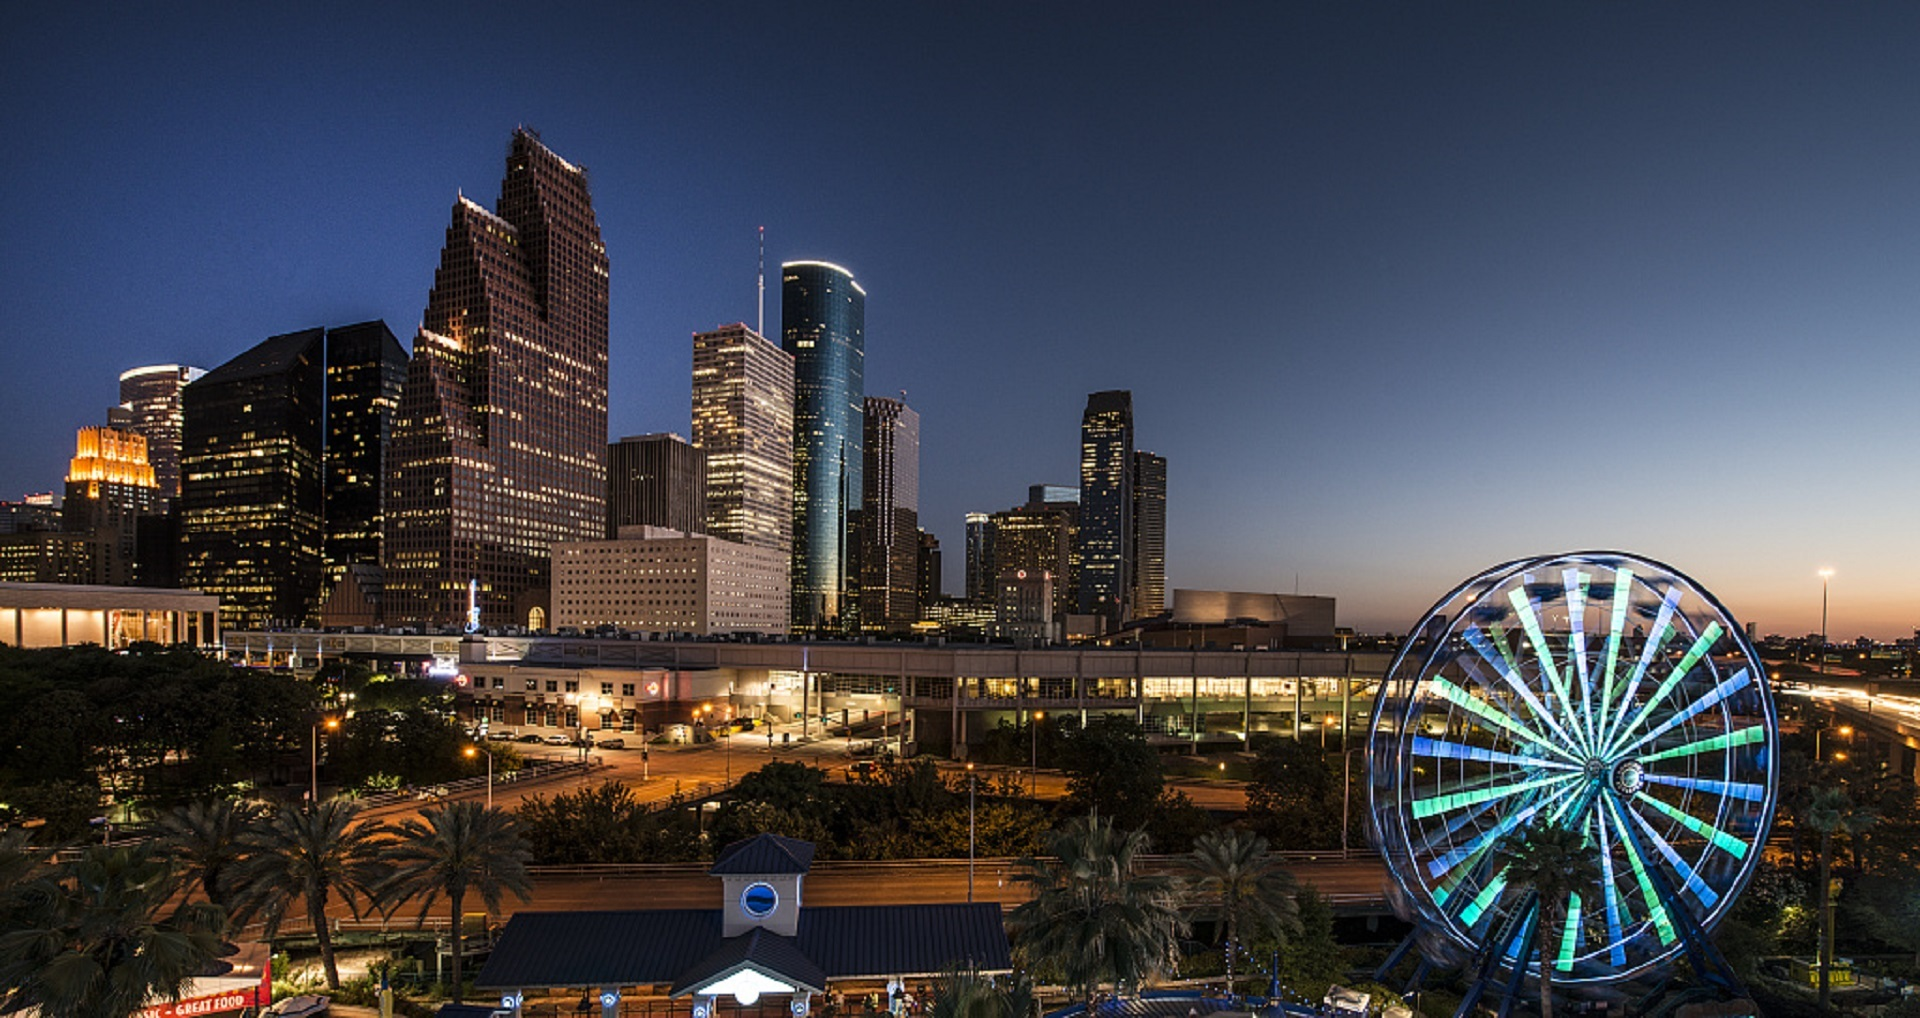 Best place to get laid in houston